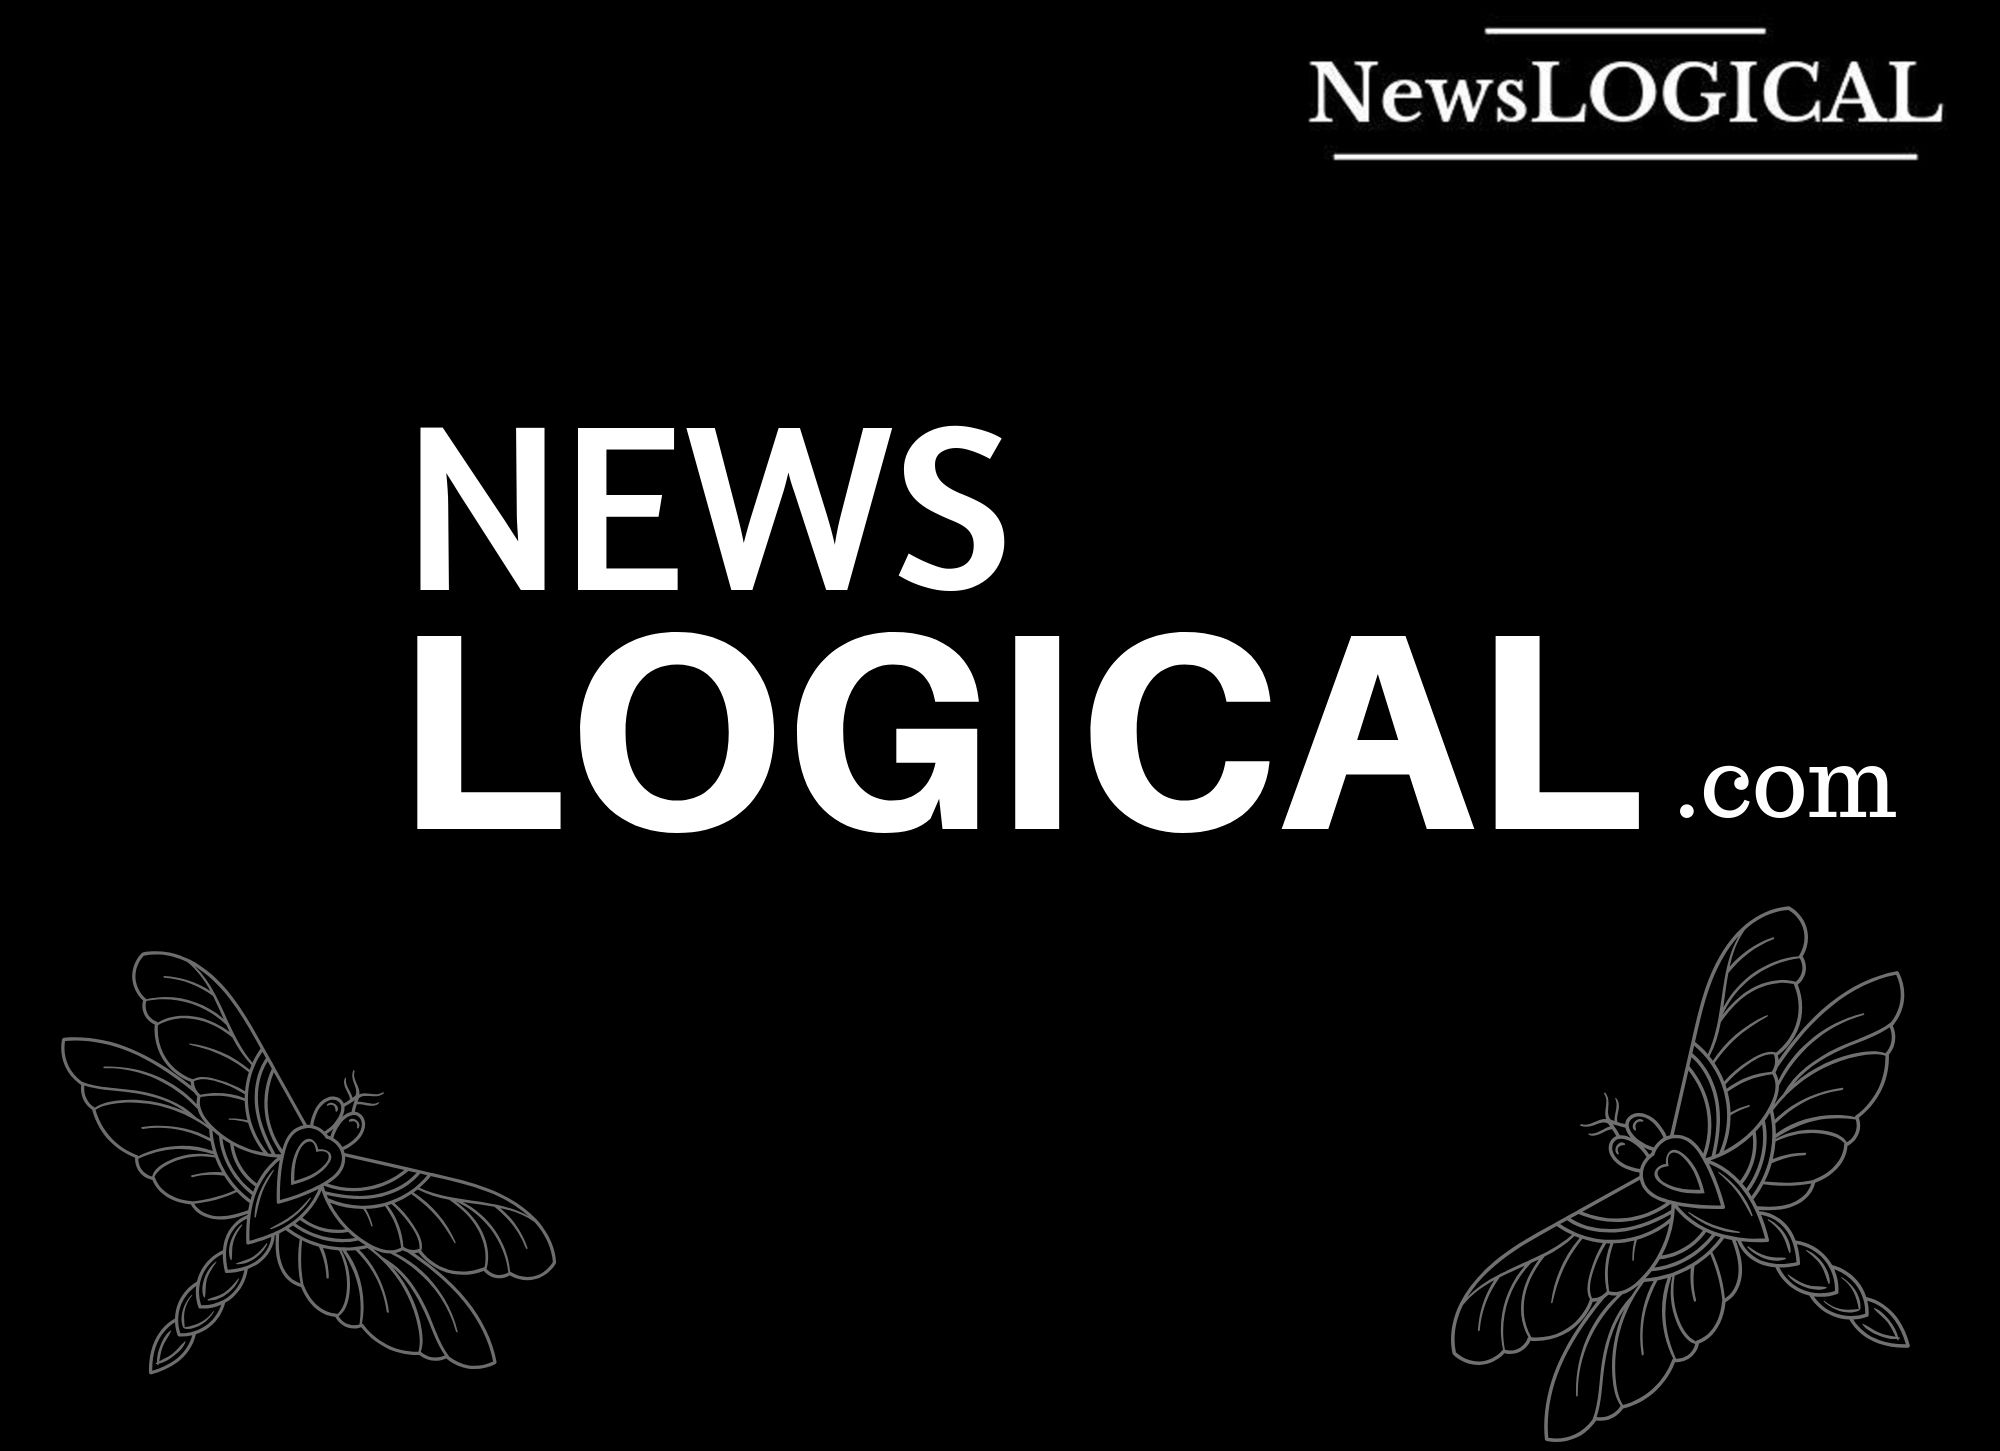 NewsLogical.com